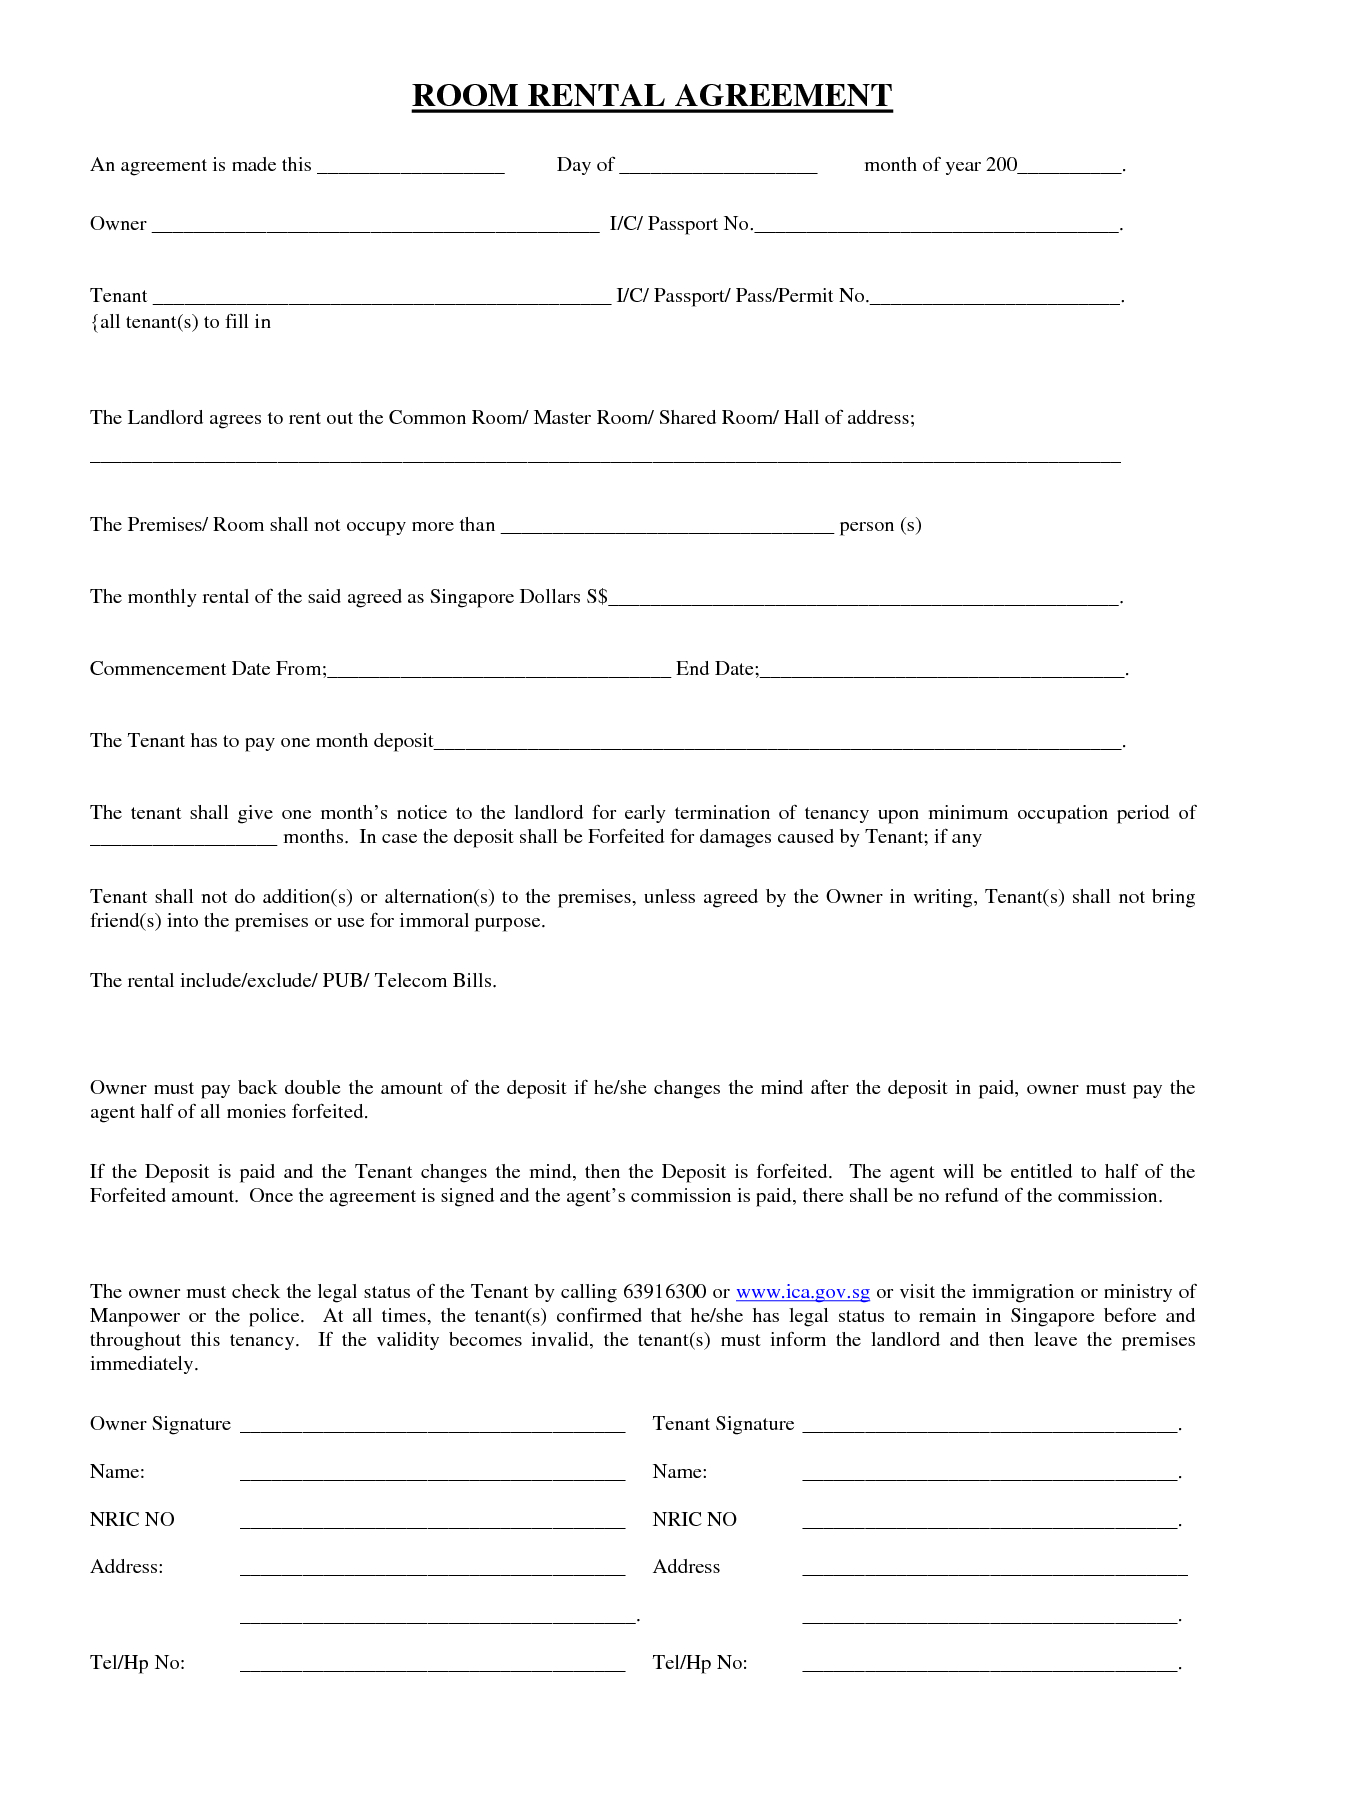 Contract Rental Agreement Template 010 Template Ideas Rental Contract Free Rare Residential Agreement